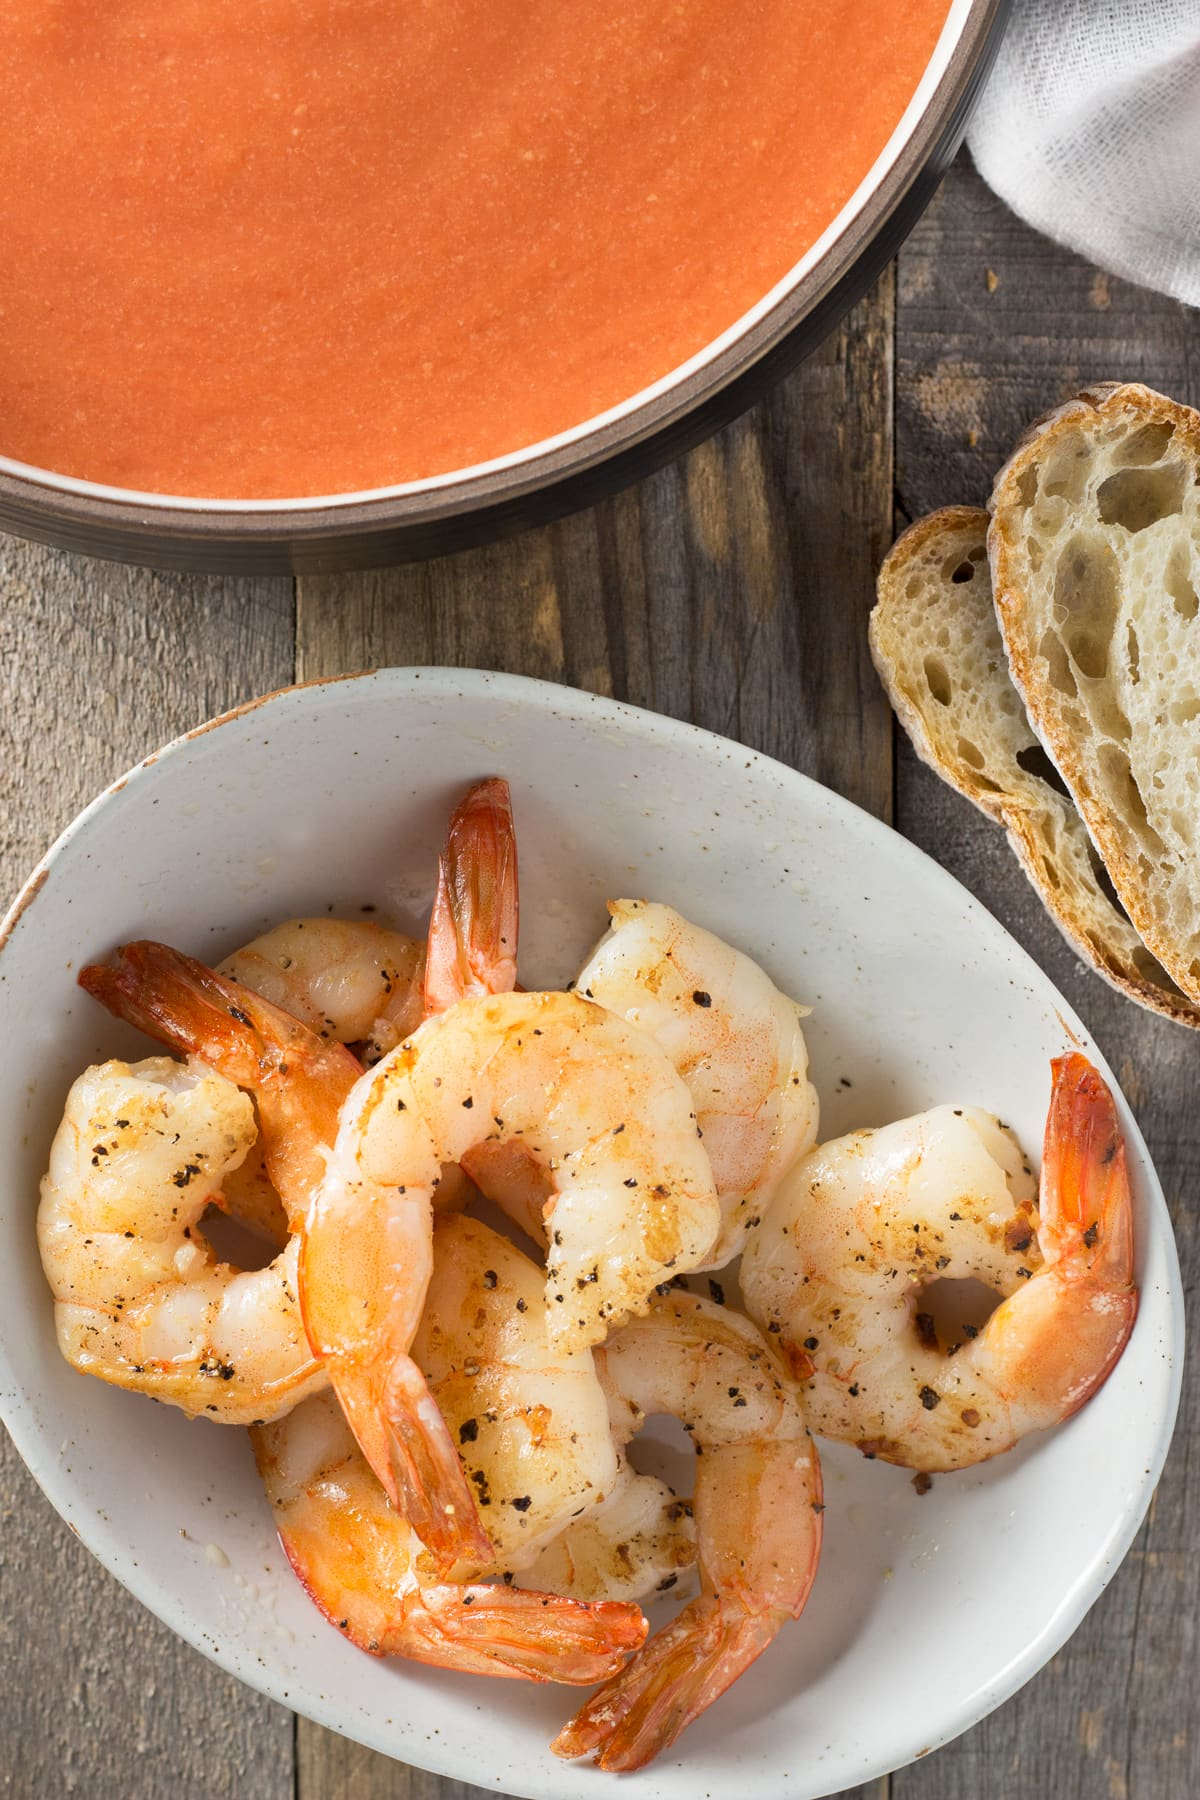 Sautéed shrimp in a bowl next to bread and tomato soup.